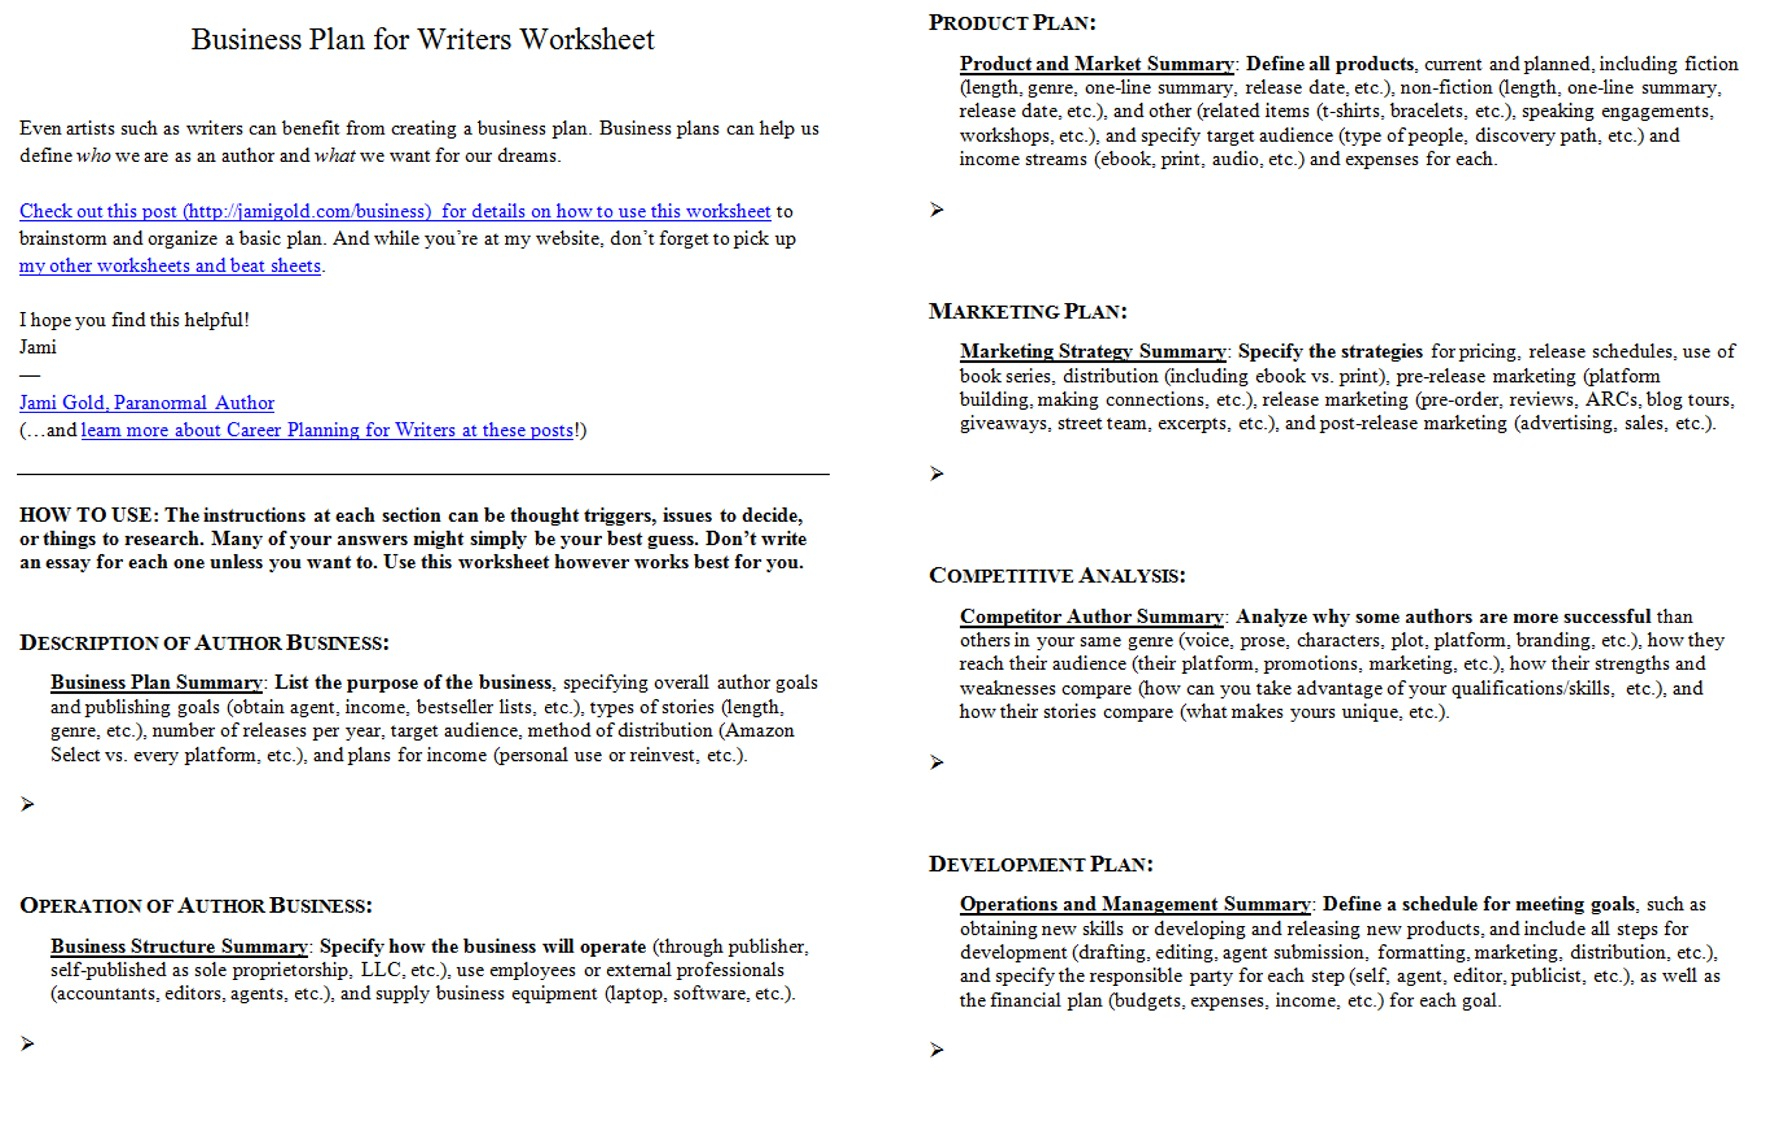 Aldiablosus  Pleasant Worksheets For Writers  Jami Gold Paranormal Author With Fascinating Screen Shot Of Both Pages Of The Business Plan For Writers Worksheet With Endearing Case Study Worksheet Also Math Drills Multiplication Worksheets In Addition Bar Graph Worksheets Th Grade And Vocabulary Development Worksheets As Well As Poetry Worksheets For Middle School Additionally Pre Kindergarten Math Worksheets From Jamigoldcom With Aldiablosus  Fascinating Worksheets For Writers  Jami Gold Paranormal Author With Endearing Screen Shot Of Both Pages Of The Business Plan For Writers Worksheet And Pleasant Case Study Worksheet Also Math Drills Multiplication Worksheets In Addition Bar Graph Worksheets Th Grade From Jamigoldcom